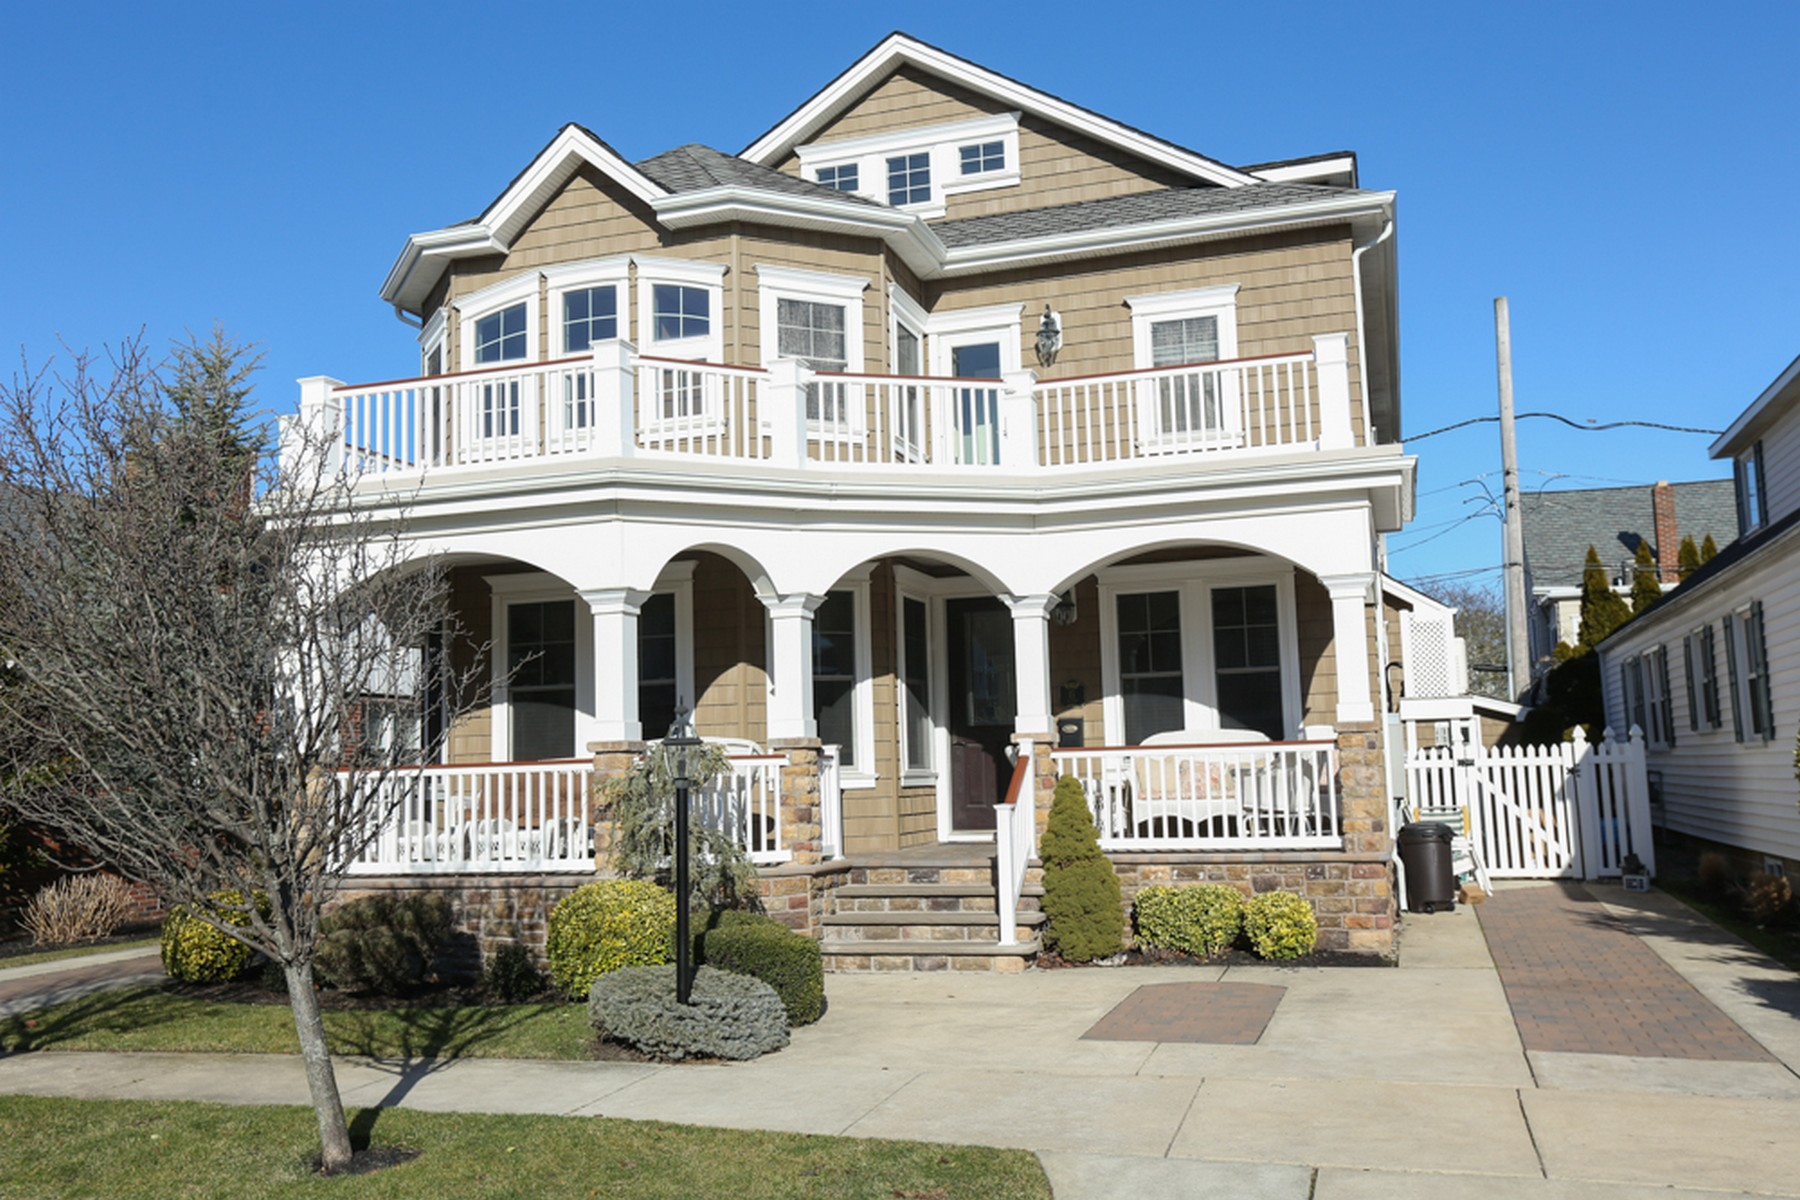 Single Family Home for Sale at 15 S Thurlow Avenue 15 S Thurlow Avenue ELEVATOR Margate, New Jersey 08402 United States